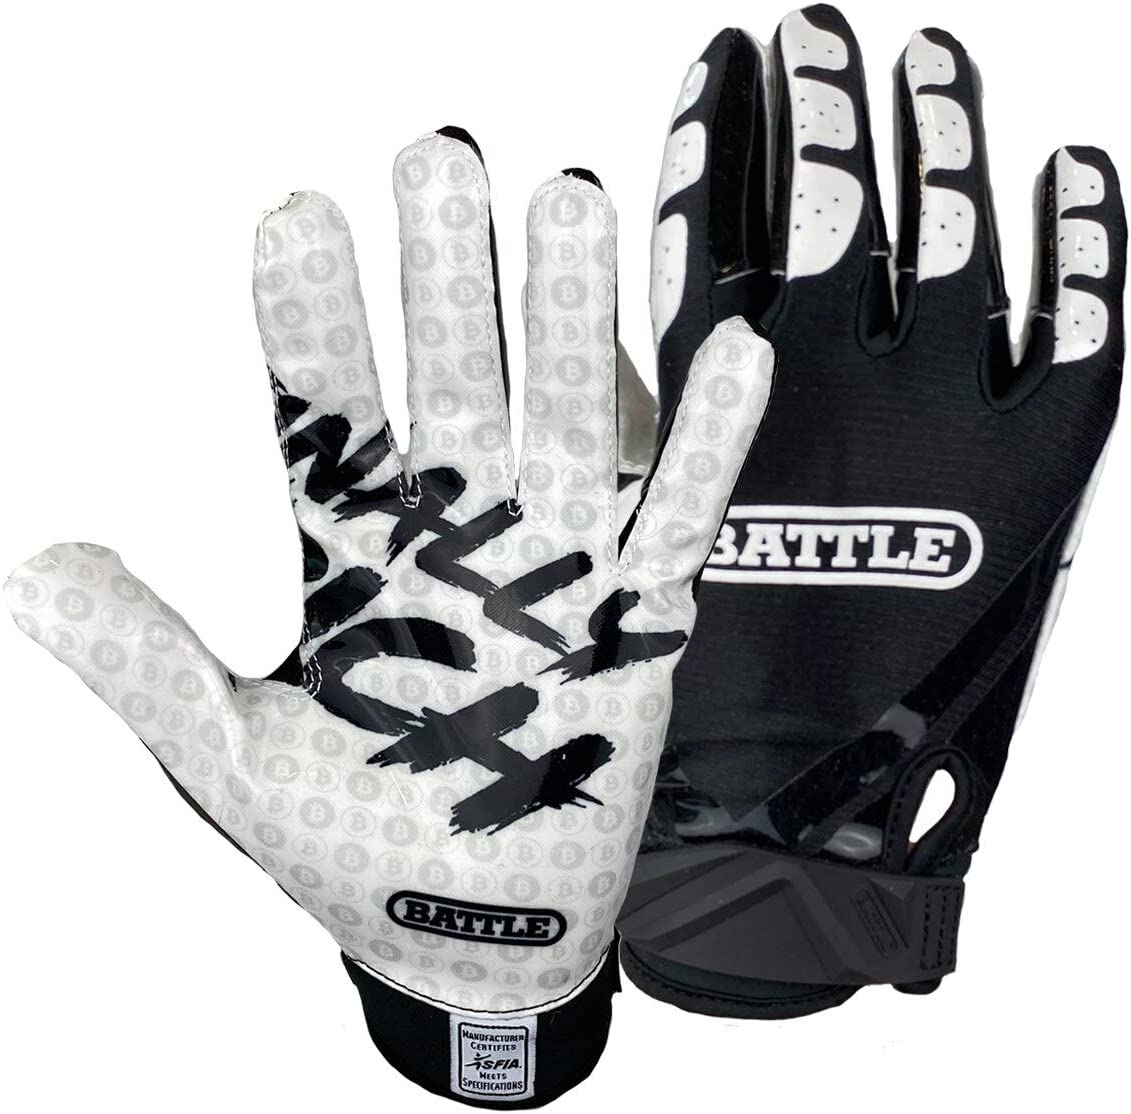 10 Best Football Gloves for NFL Receivers 7